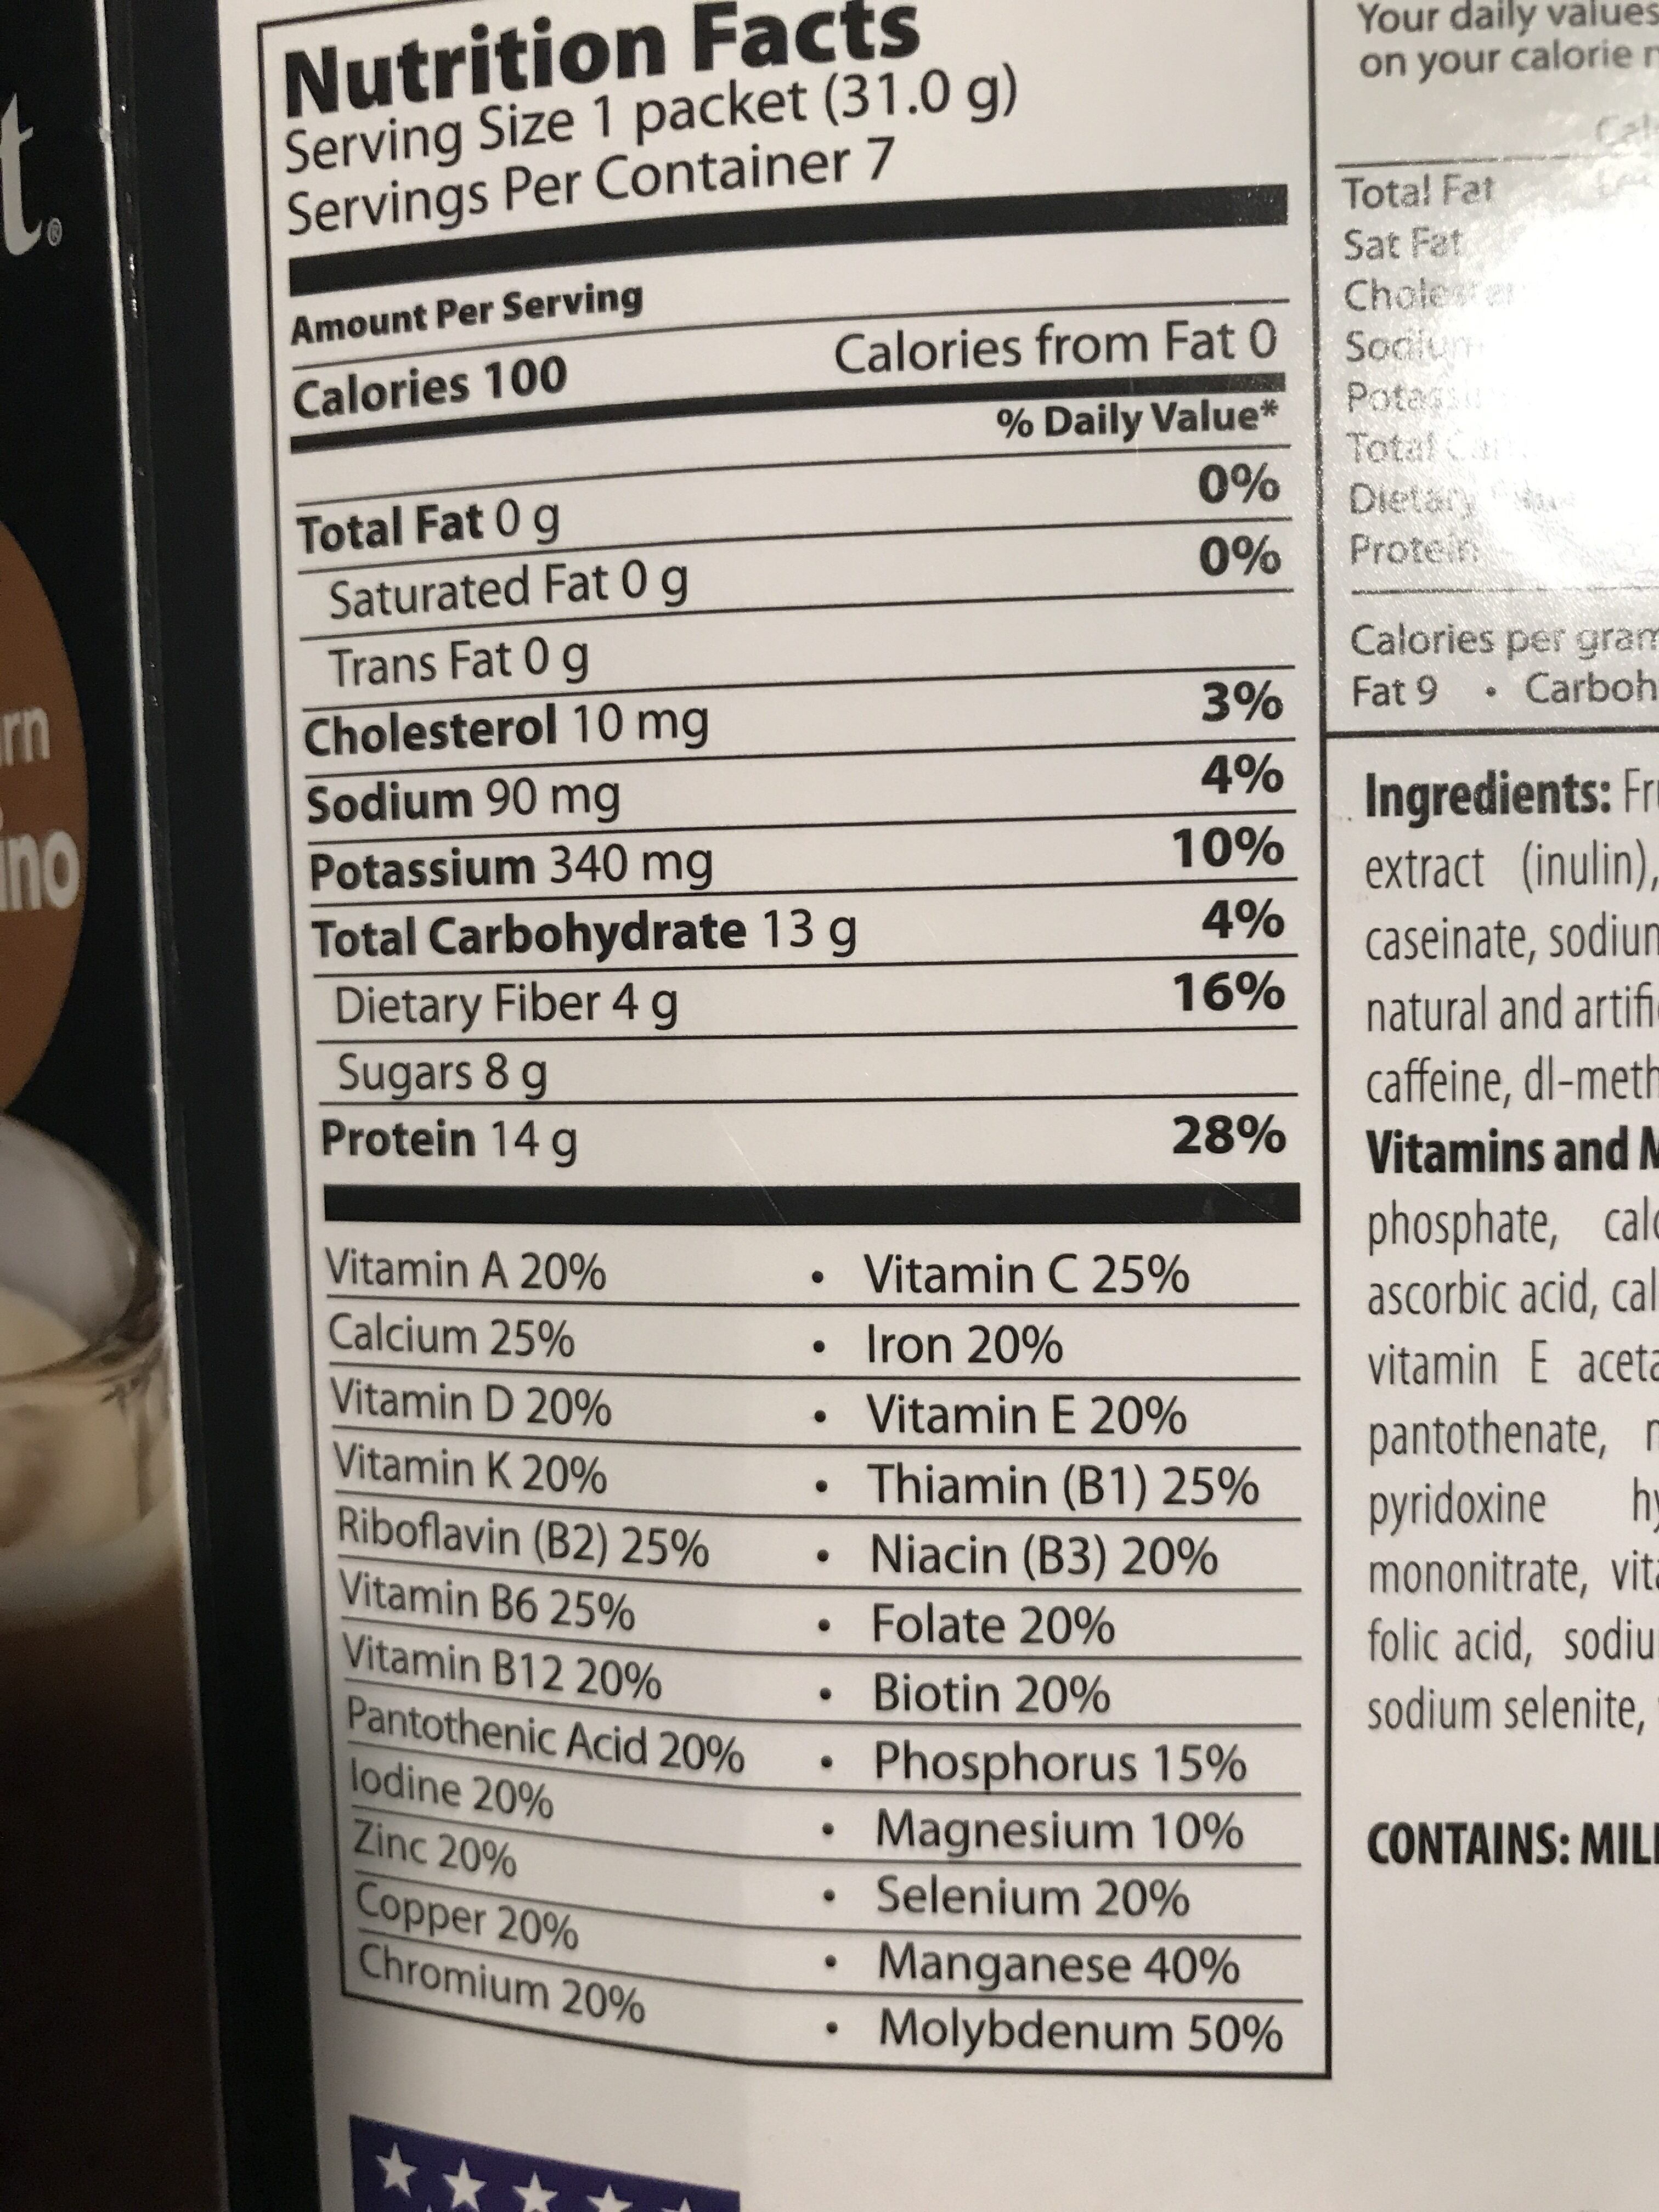 Calorie Burn Cappuccino - Nutrition facts